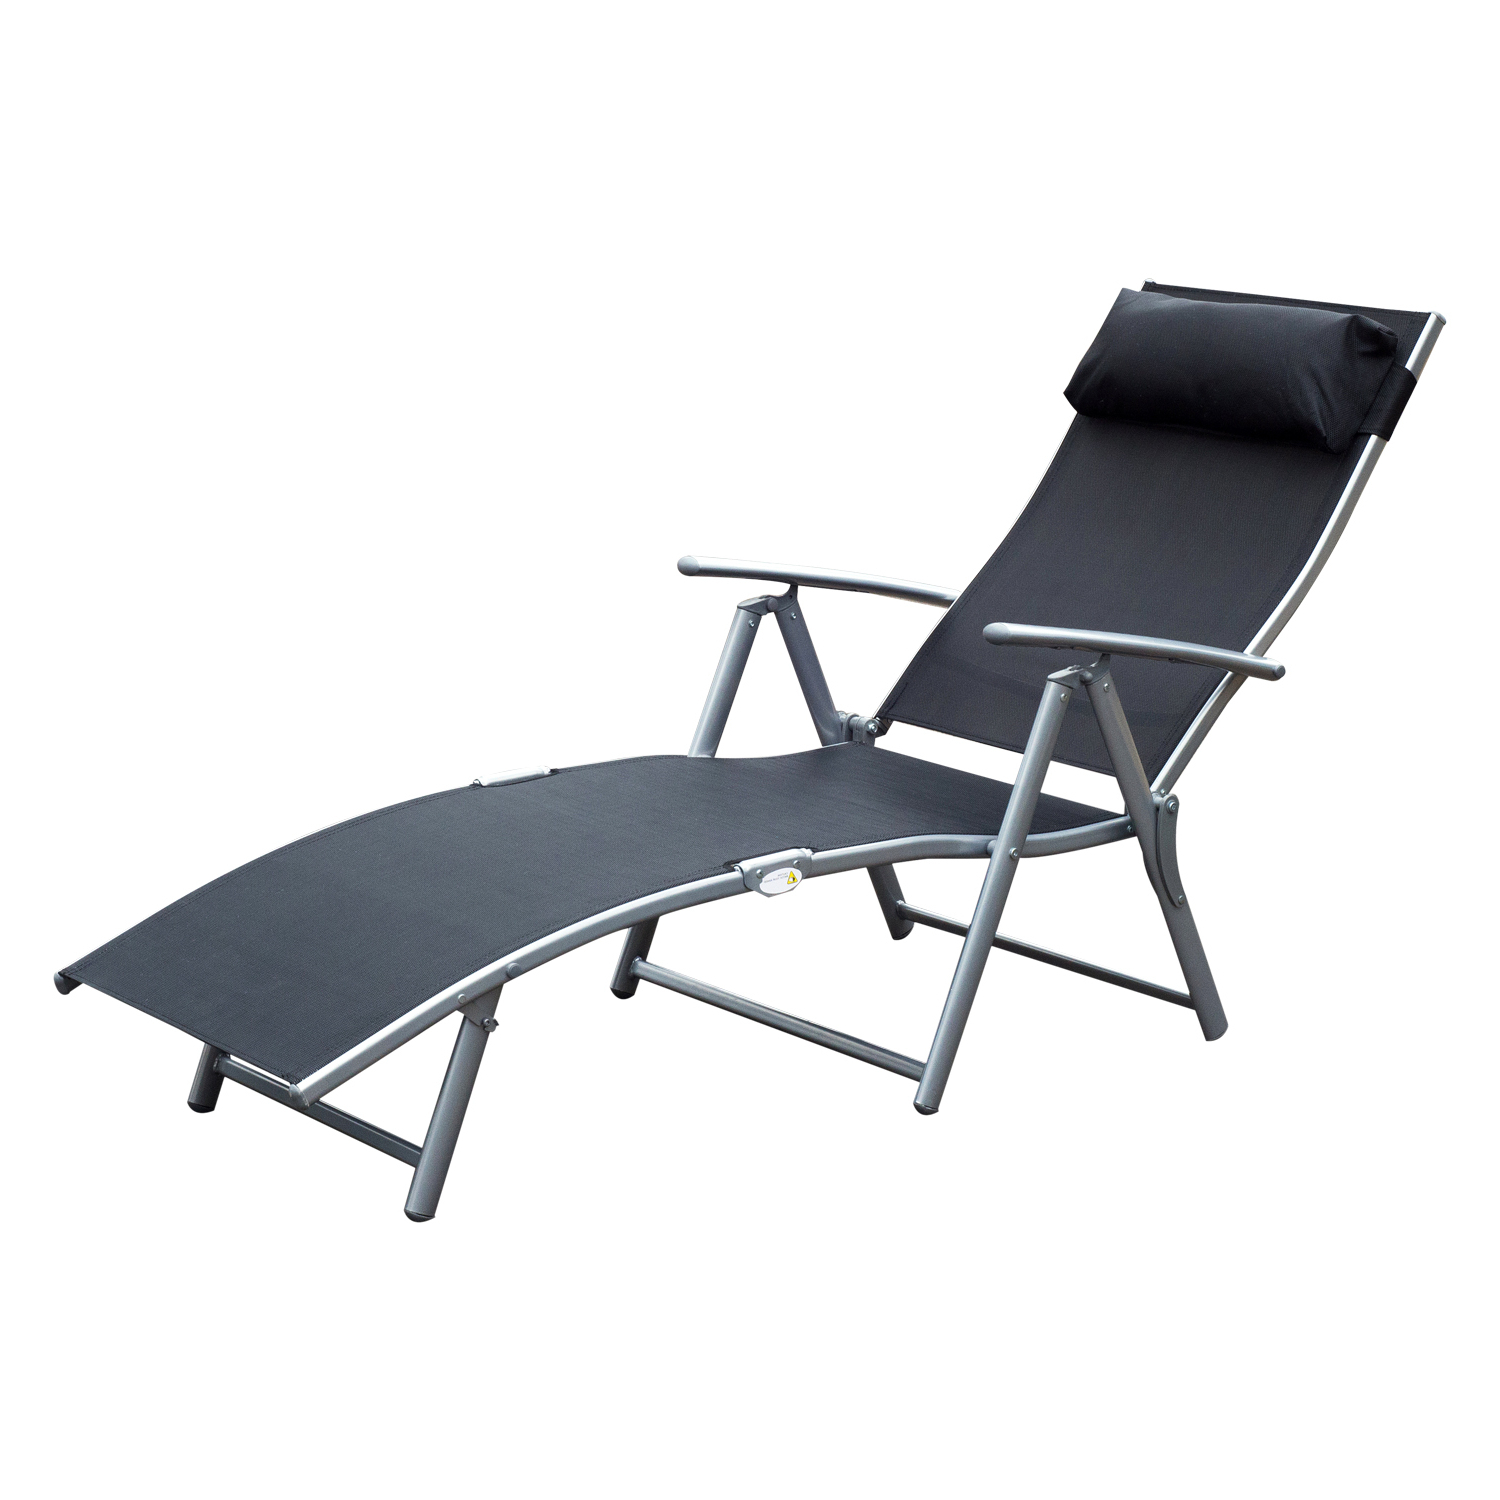 Outsunny Sling Fabric Patio Reclining Chaise Lounge Chair Folding 5 Position Adjustable Outdoor Deck With Cushion – Black Inside Most Recently Released Adjustable Sling Fabric Patio Chaise Lounges (View 7 of 25)